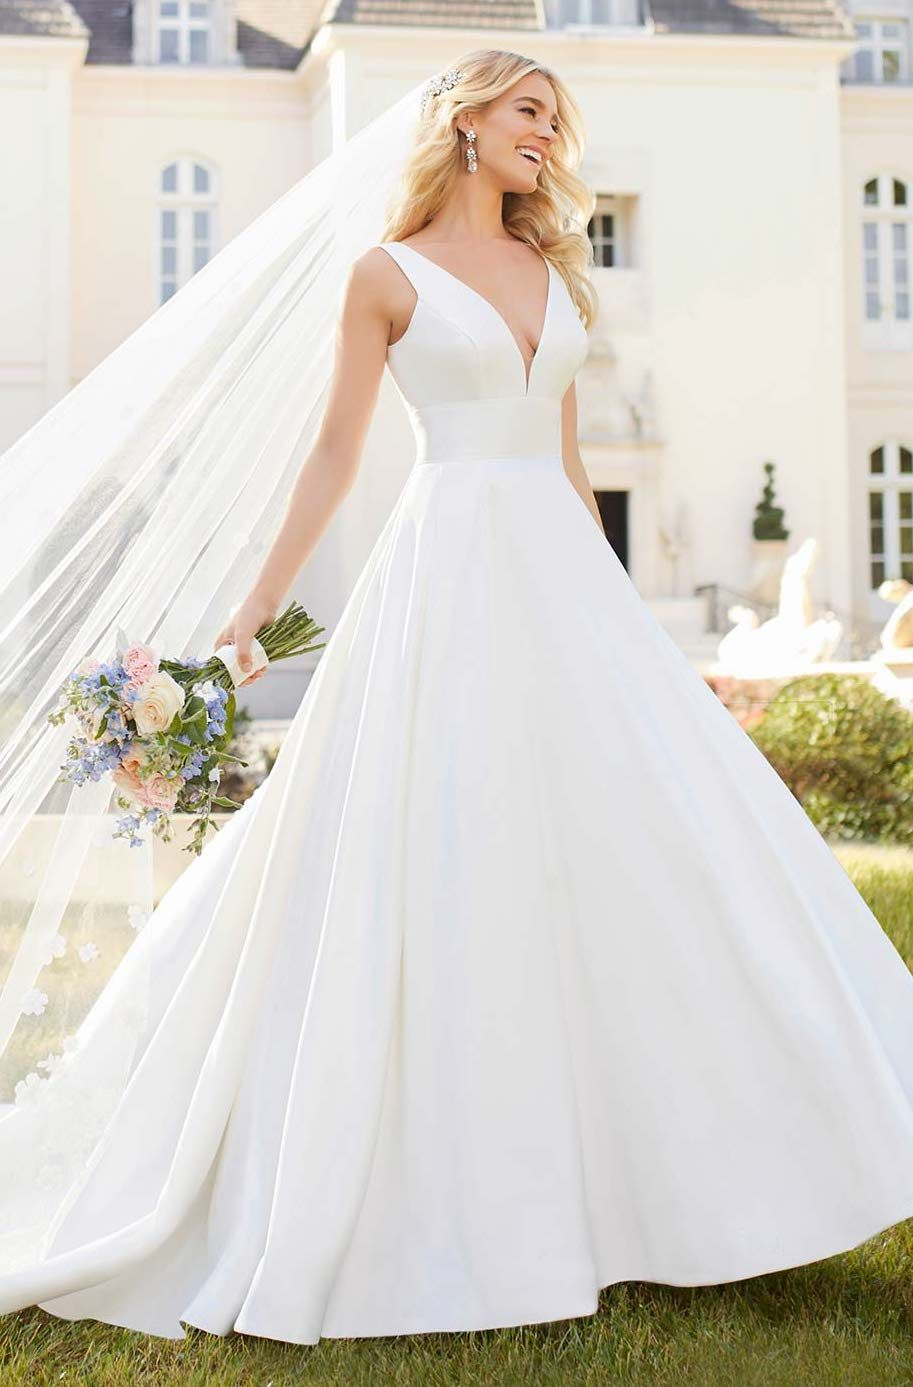 Stella York wedding dress 18. Simplicity at its best. Made of